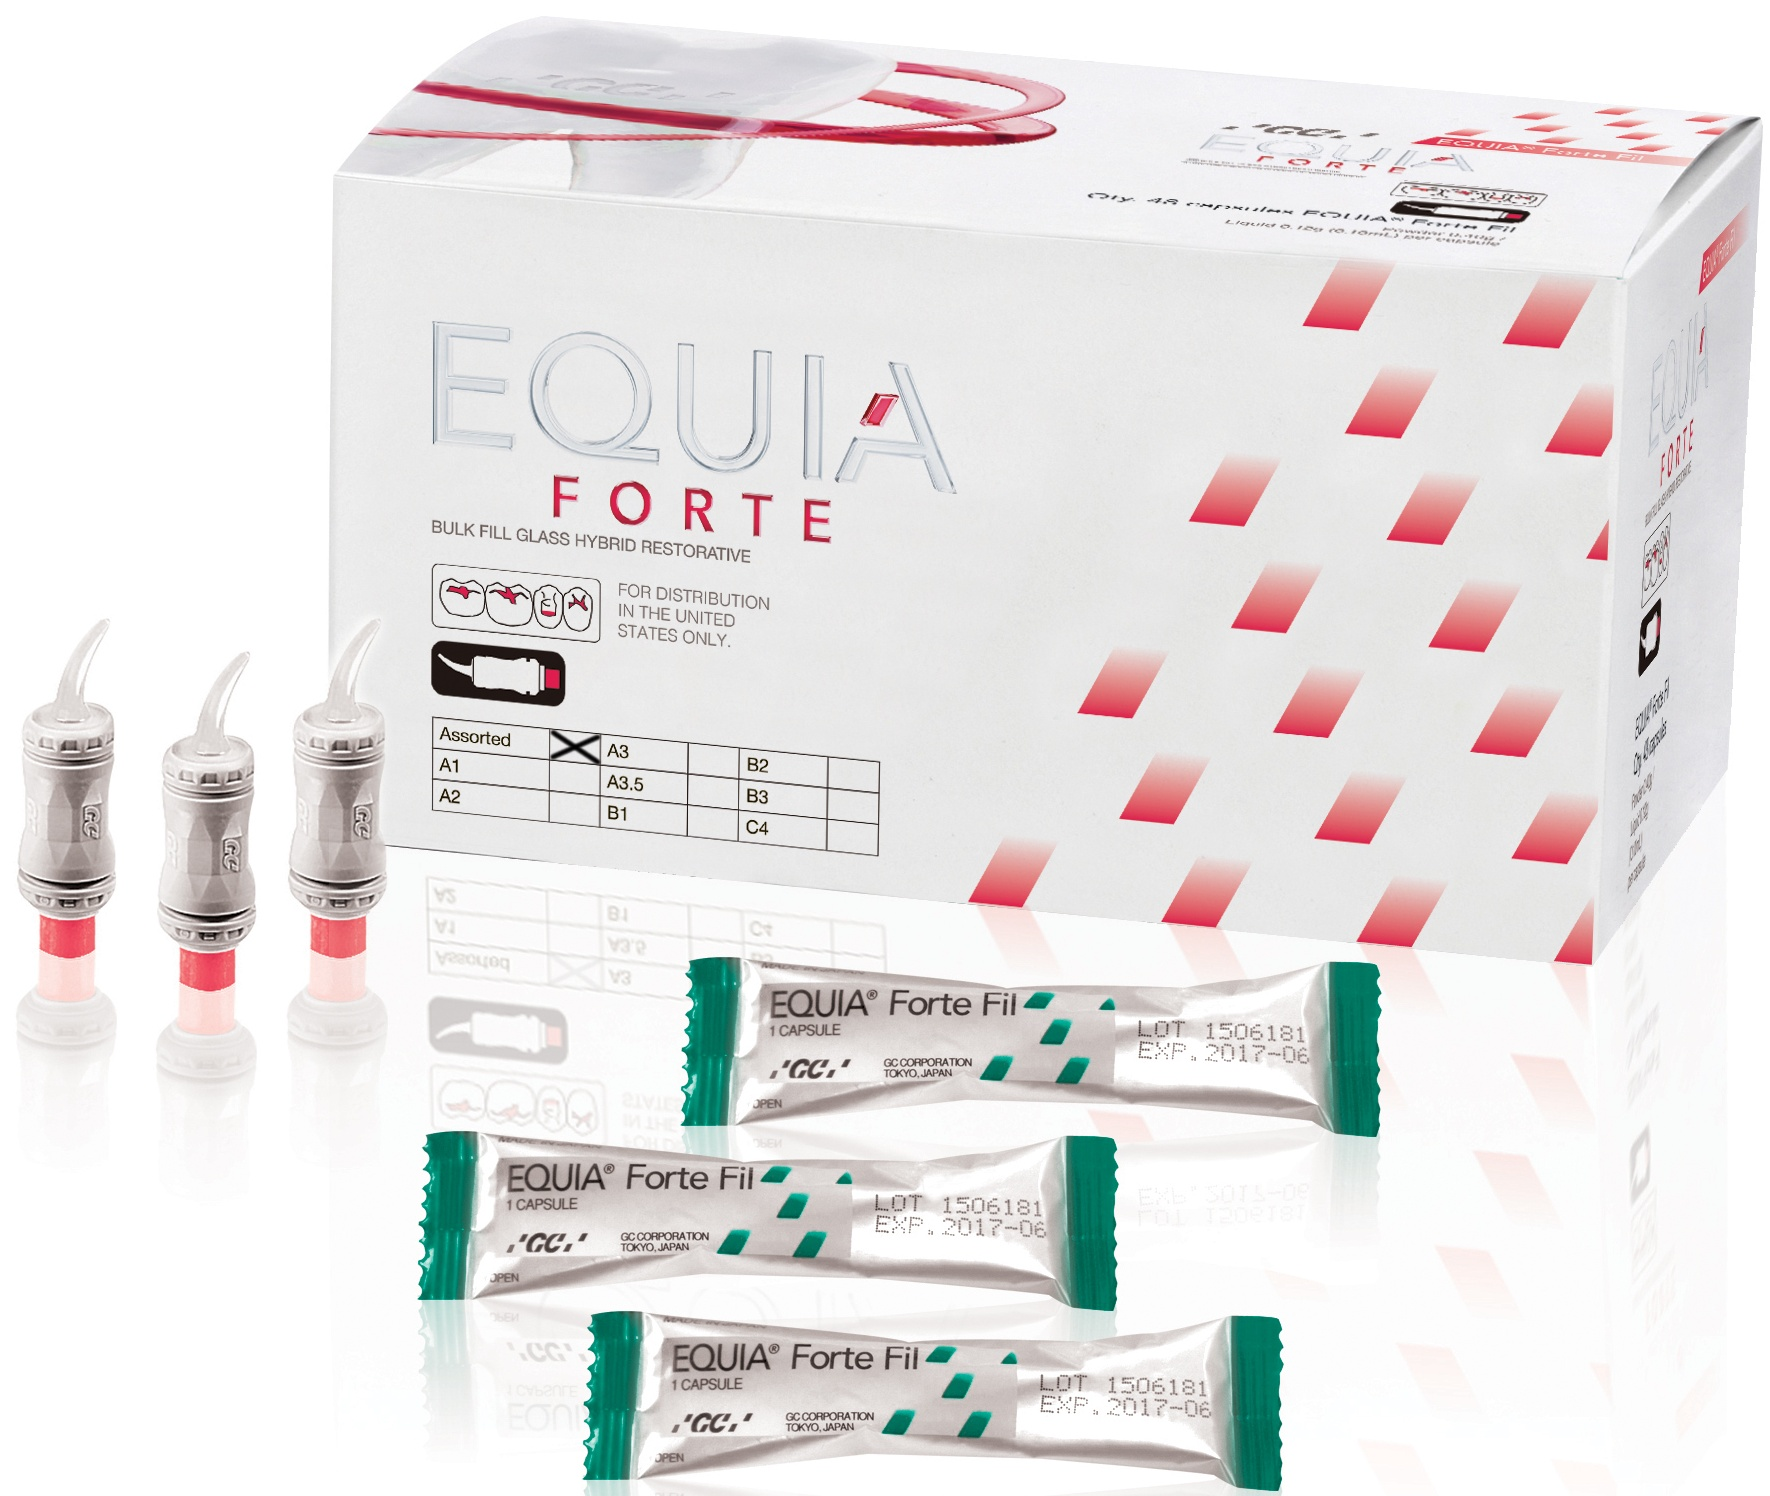 EQUIA Forte, Promo Pack, 2 x 50 Capsules A2 - A3, EEP